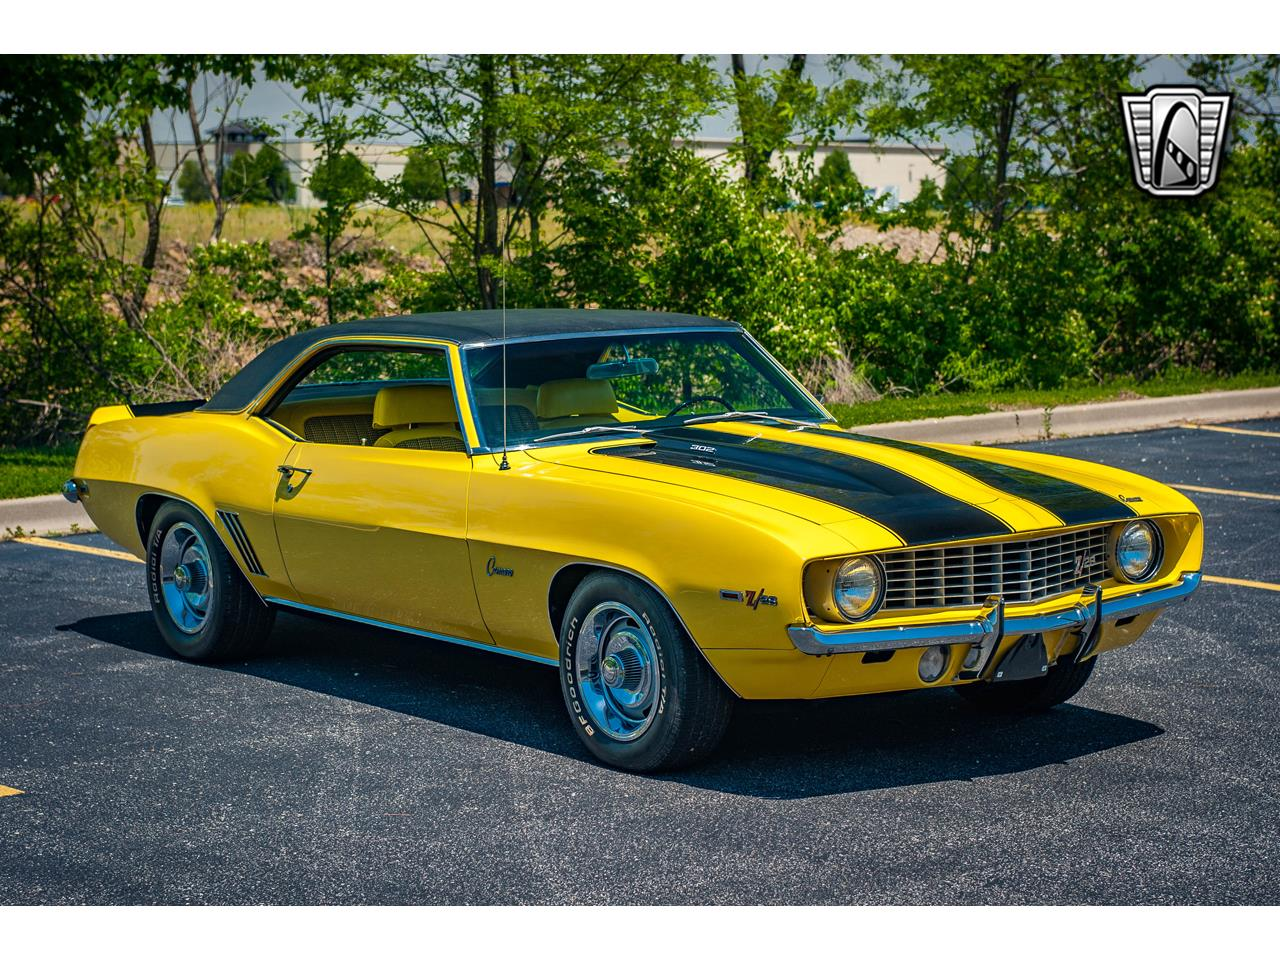 Large Picture of 1969 Chevrolet Camaro located in Illinois - $91,000.00 Offered by Gateway Classic Cars - St. Louis - QB9B